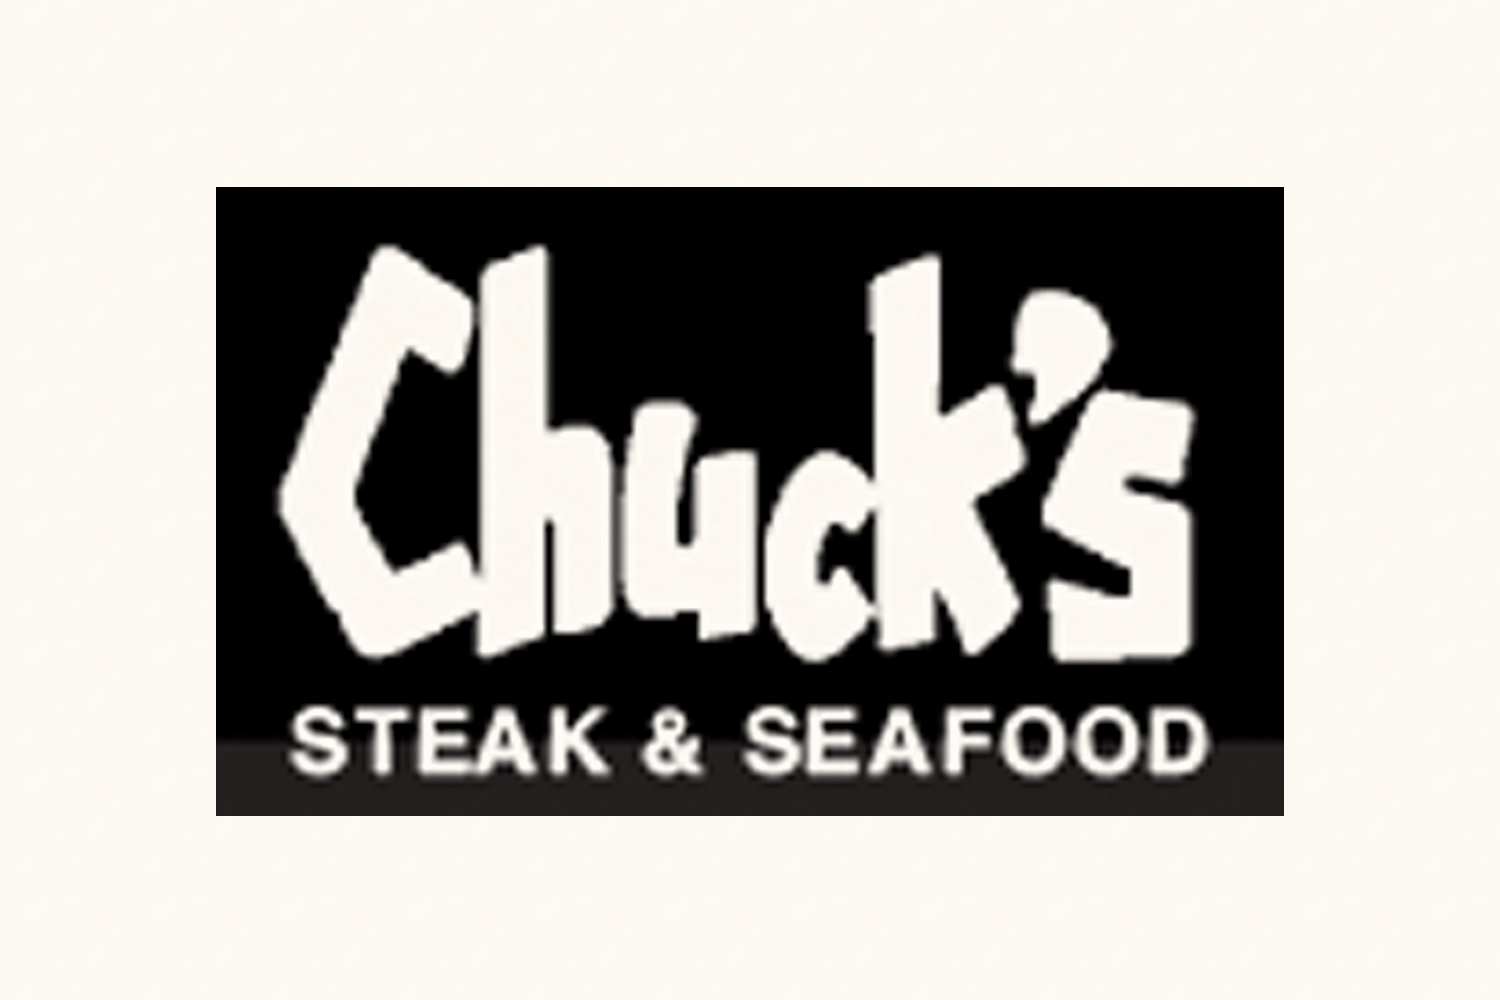 Chuck's Steakhouse of Hawaii